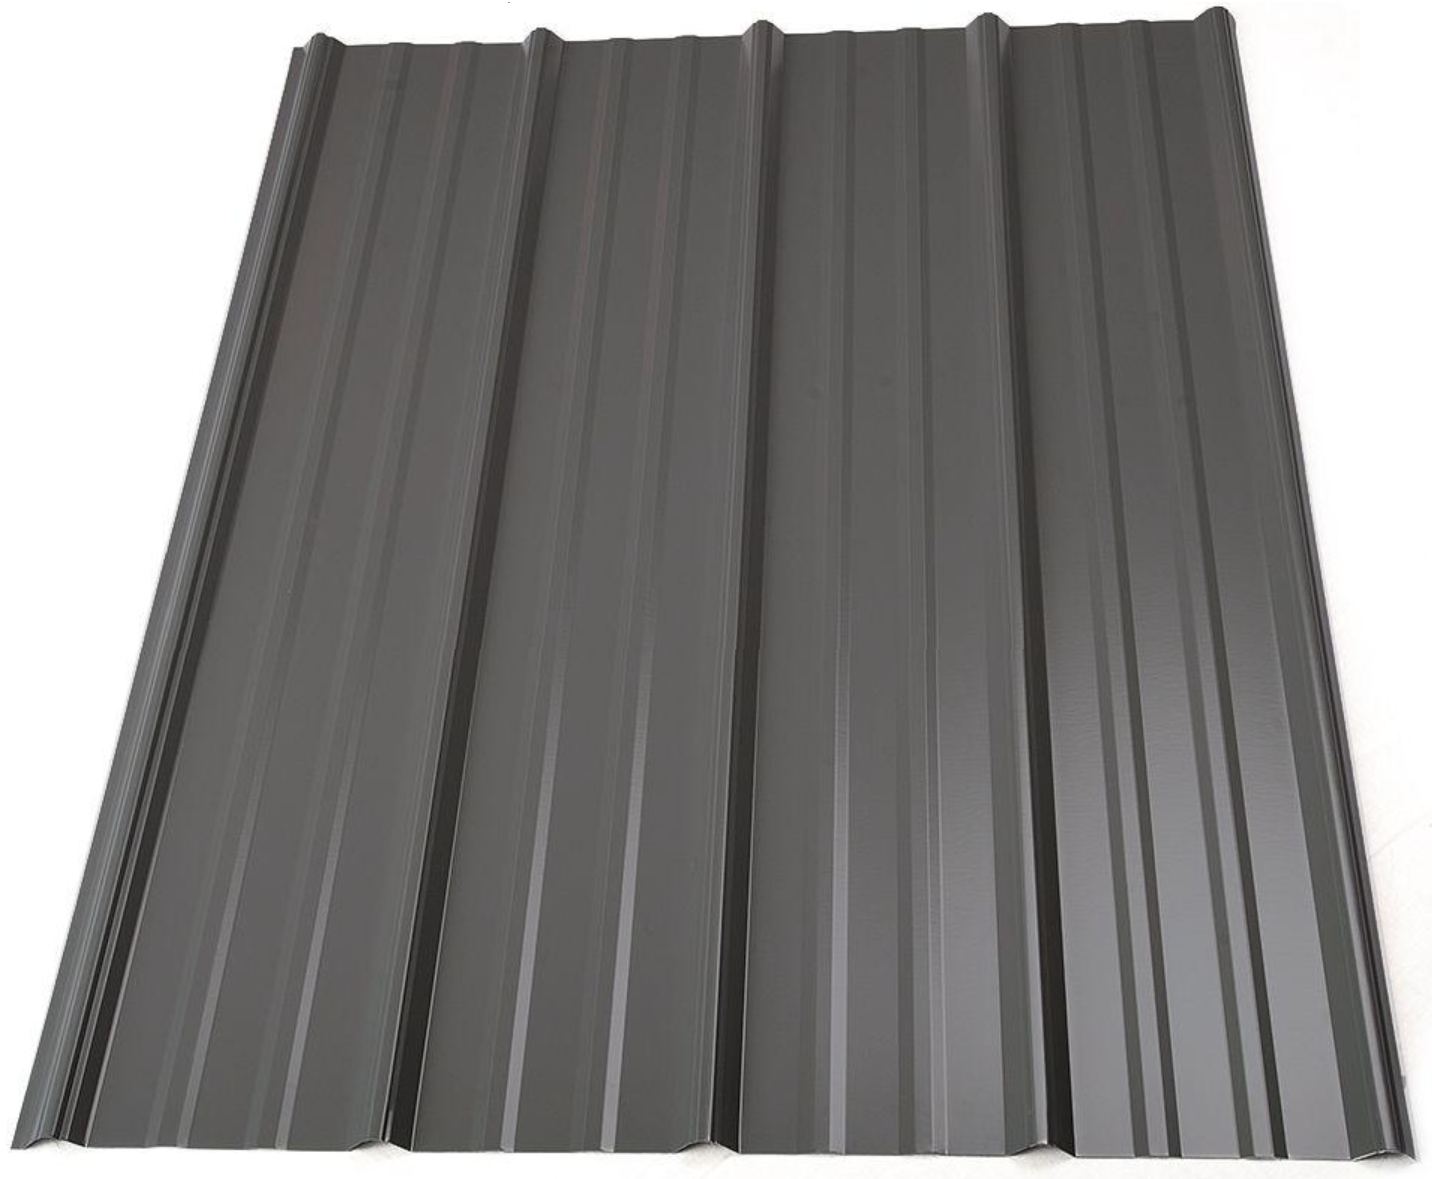 Charcoal Roof Png Powered By Box Roof Panels Steel Roof Panels Metal Roof Panels